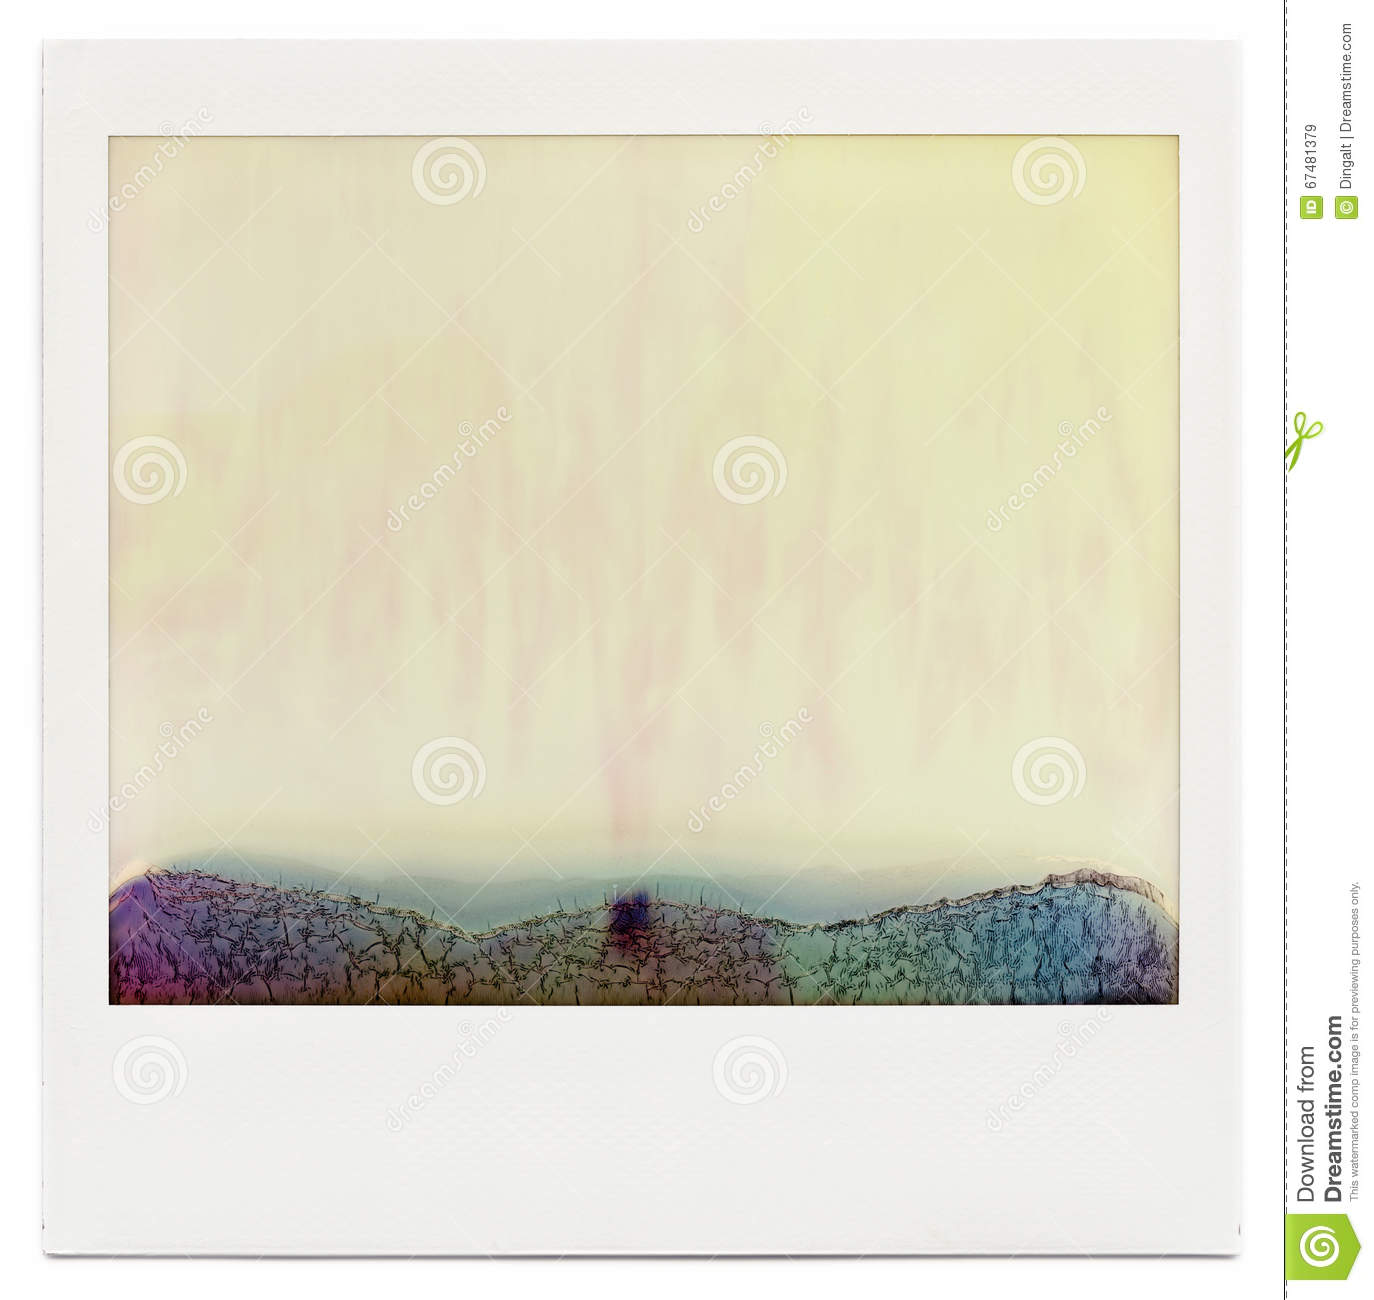 designed blank instant film frame with abstract filling isolated on white